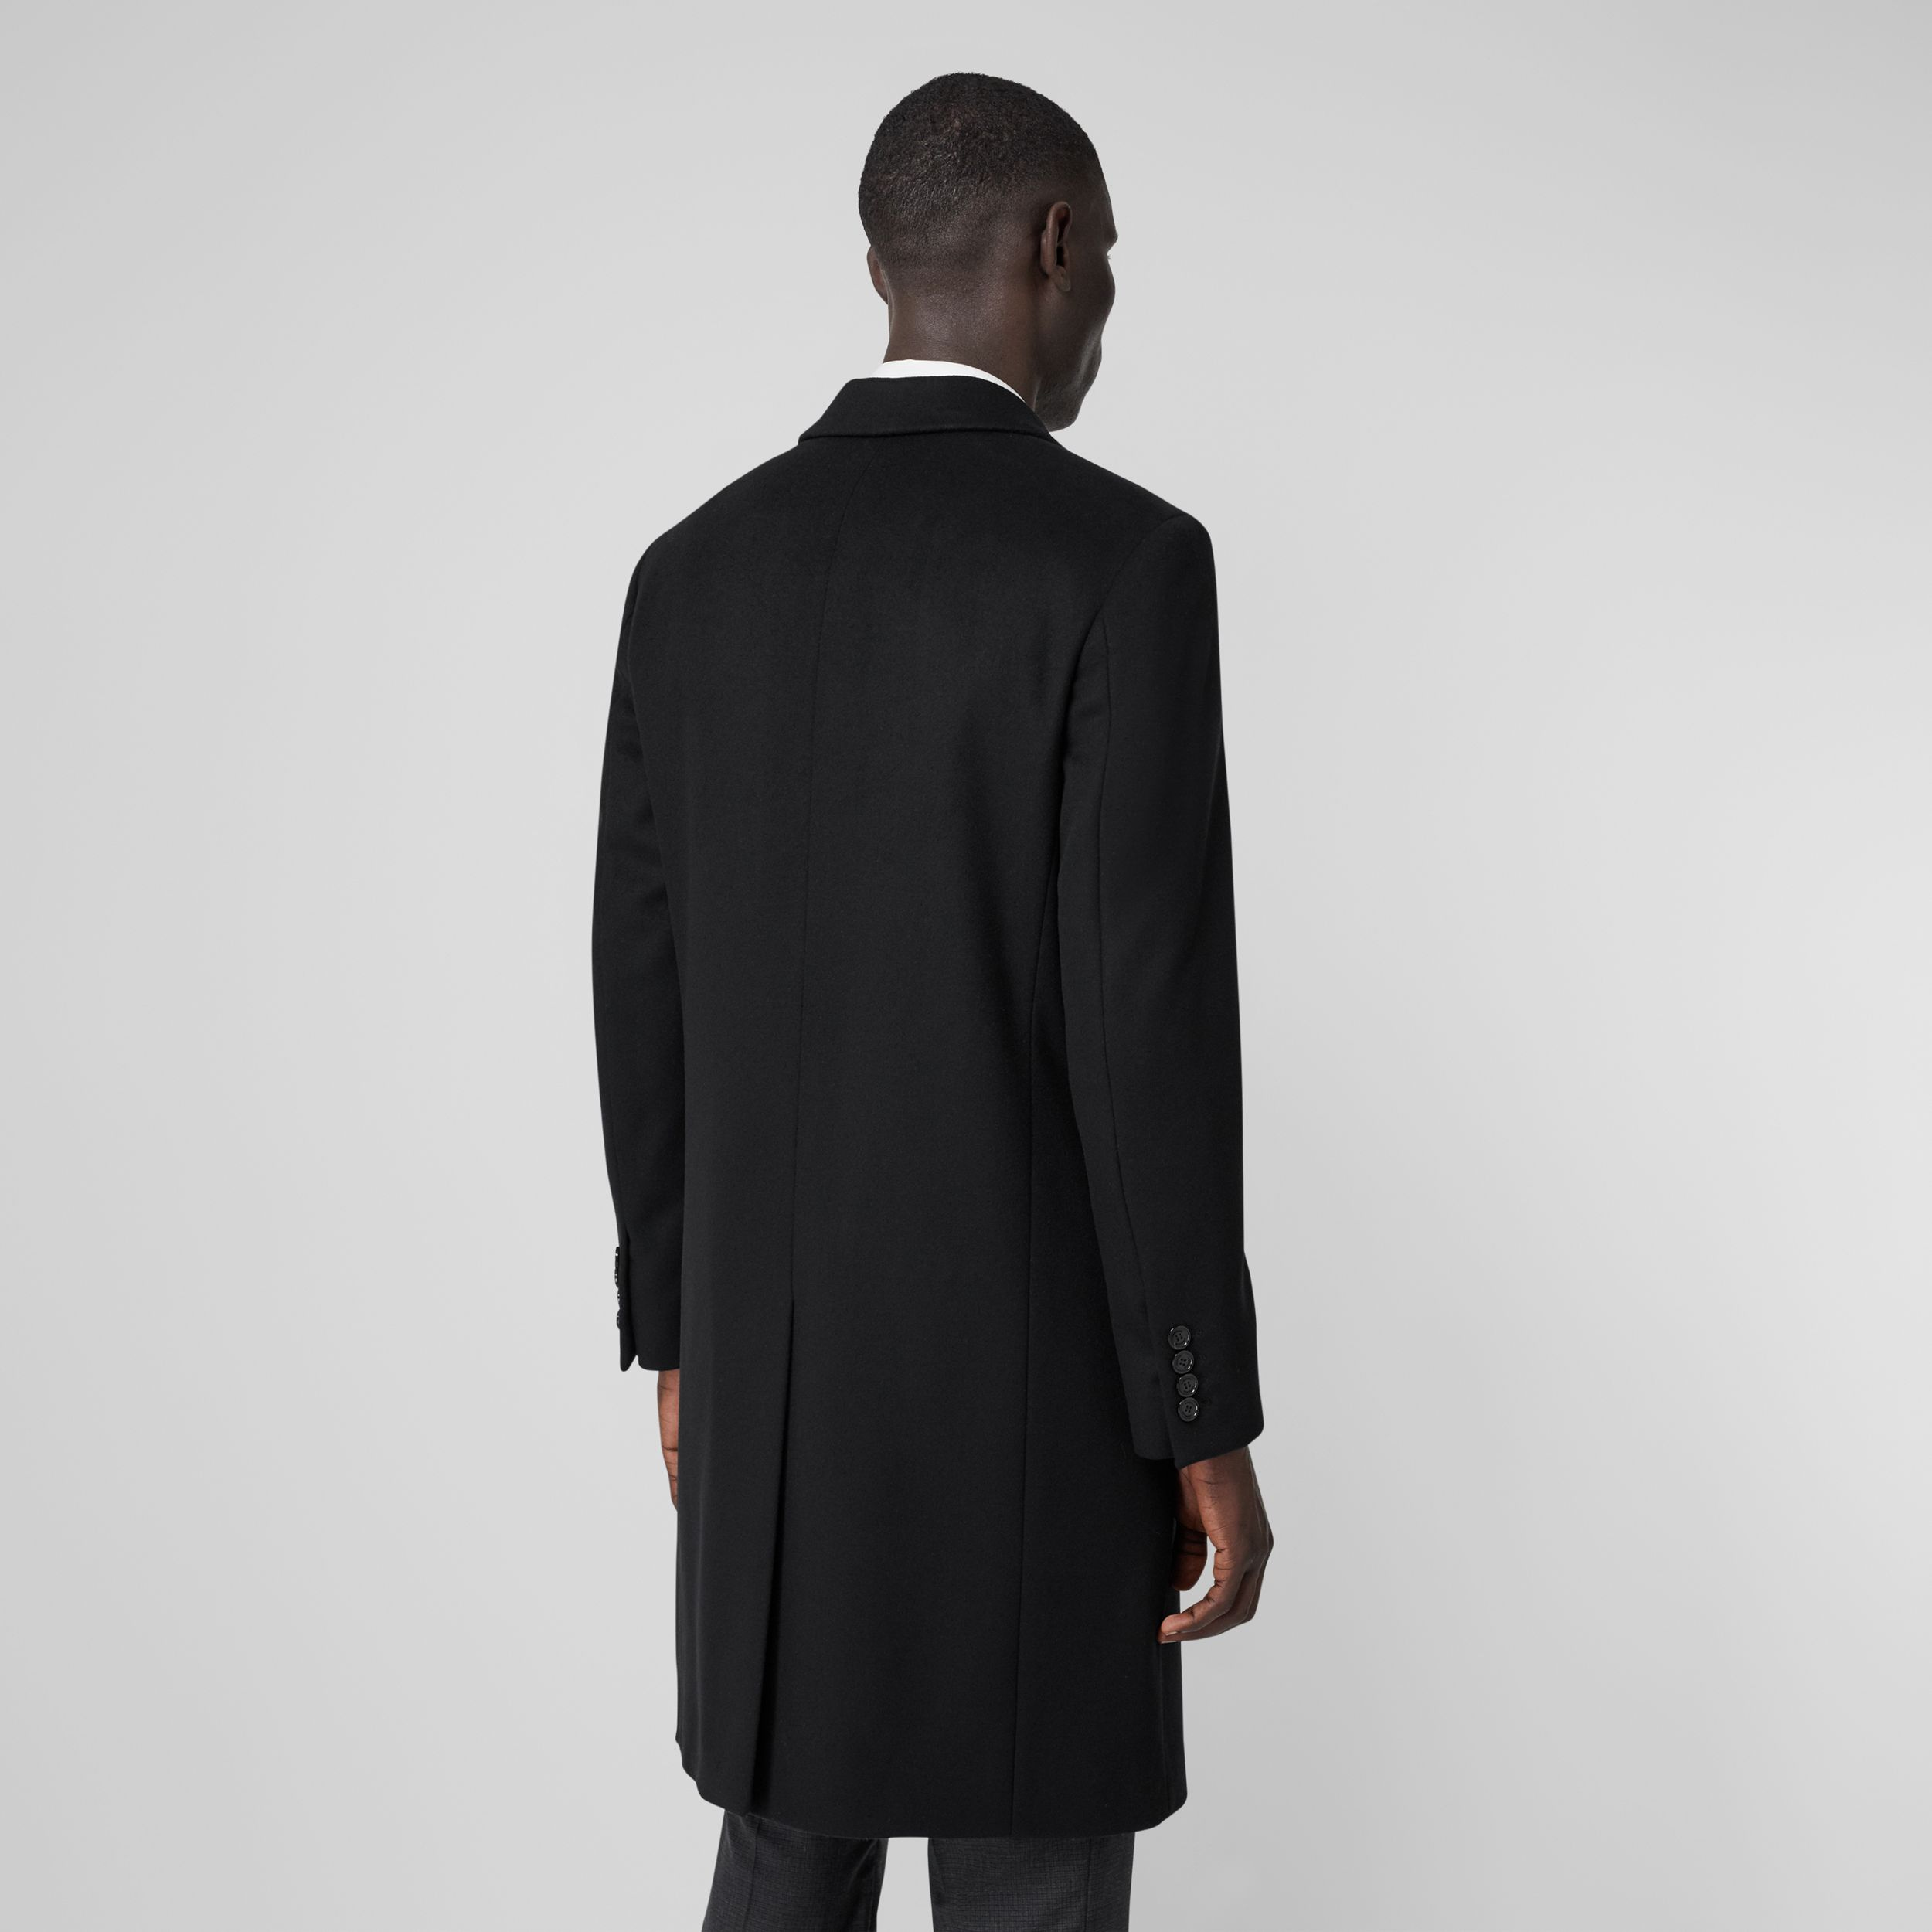 Wool Cashmere Tailored Coat in Black - Men | Burberry United States - 3